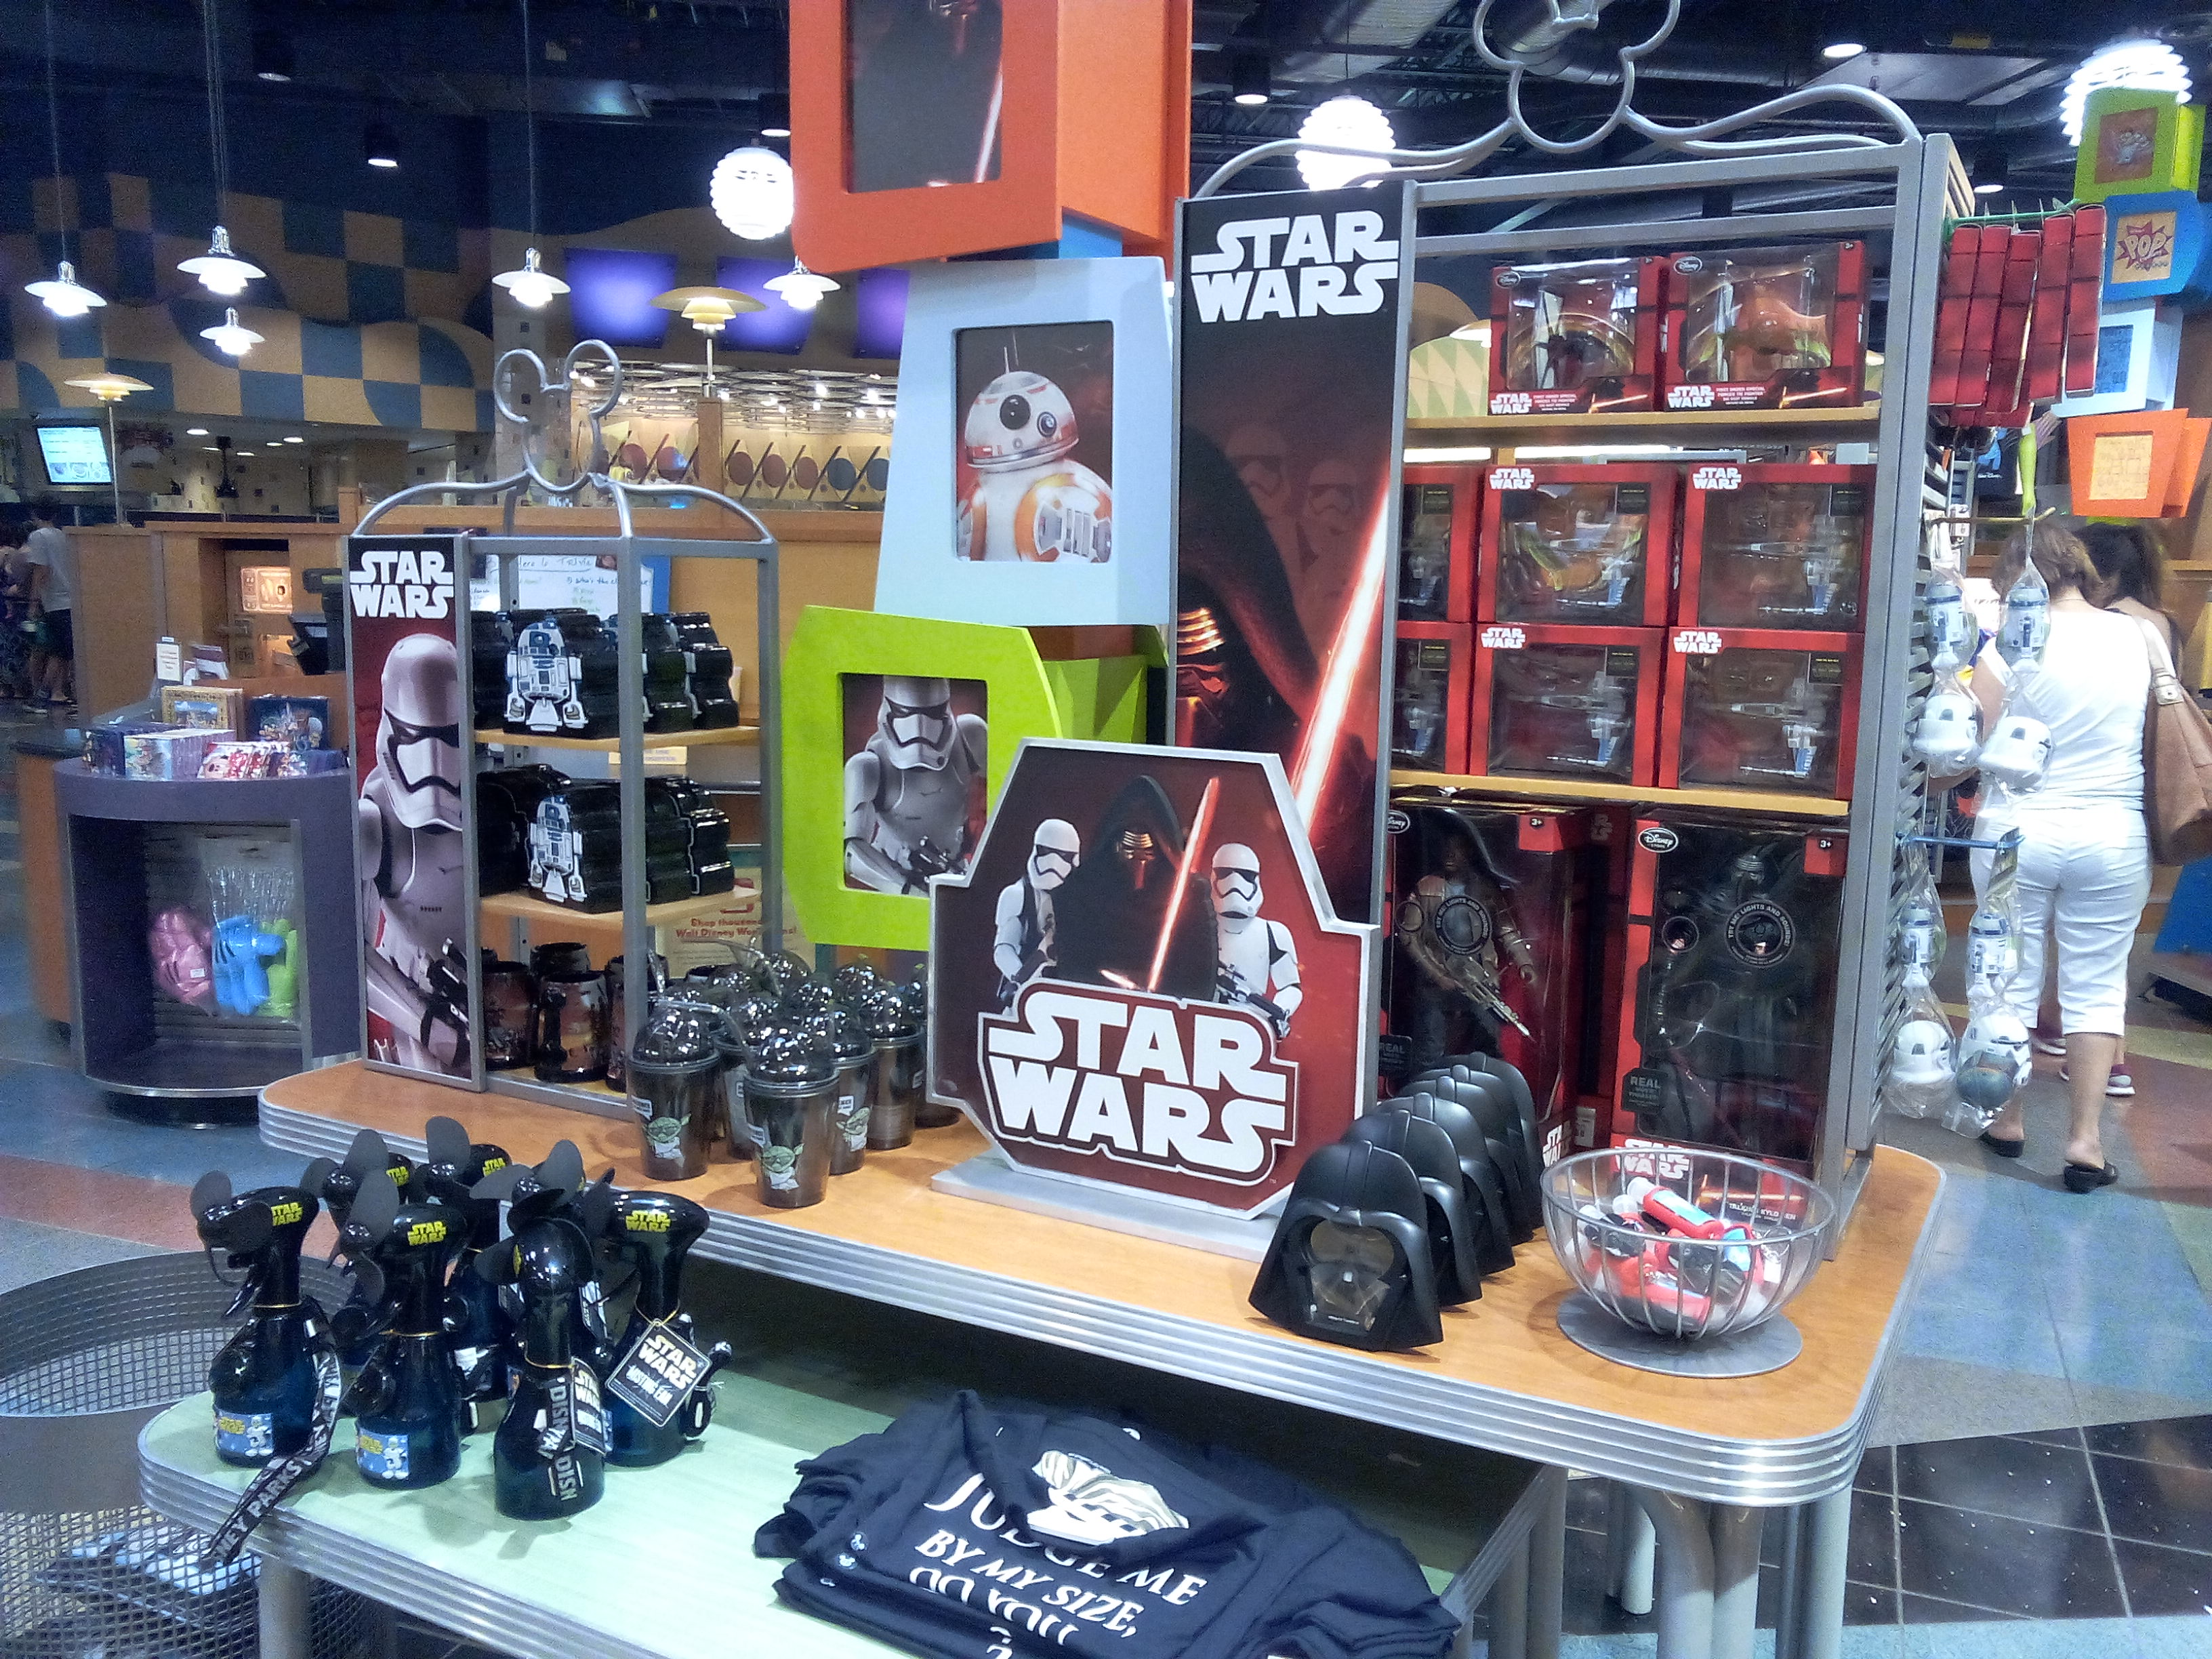 Mouseplanet - A Star Wars Fan visits the Launch Bay by Todd King